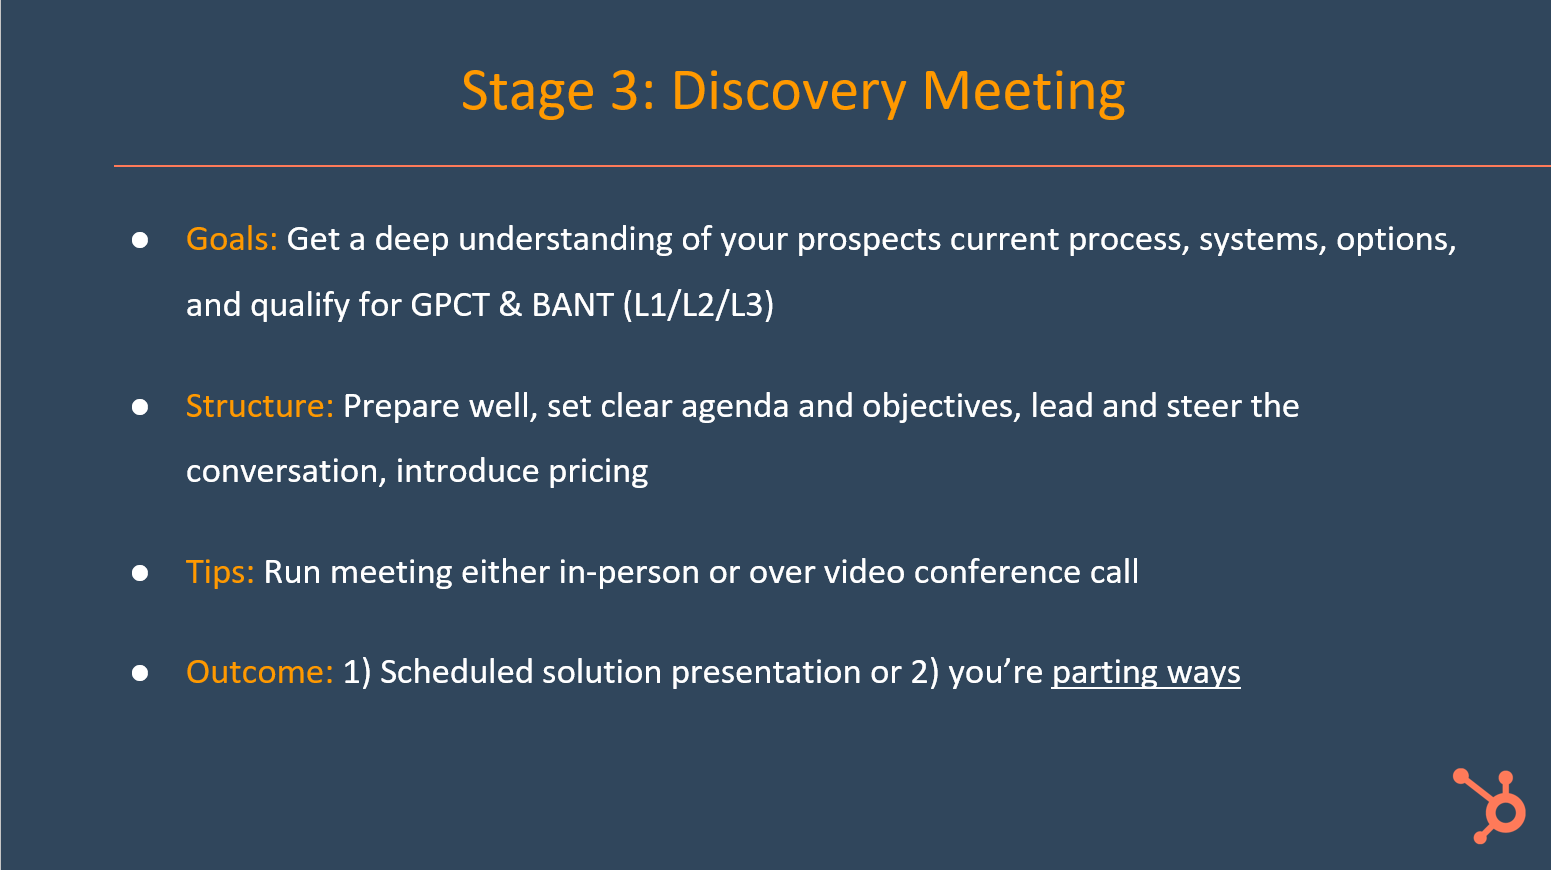 The Discovery Meeting